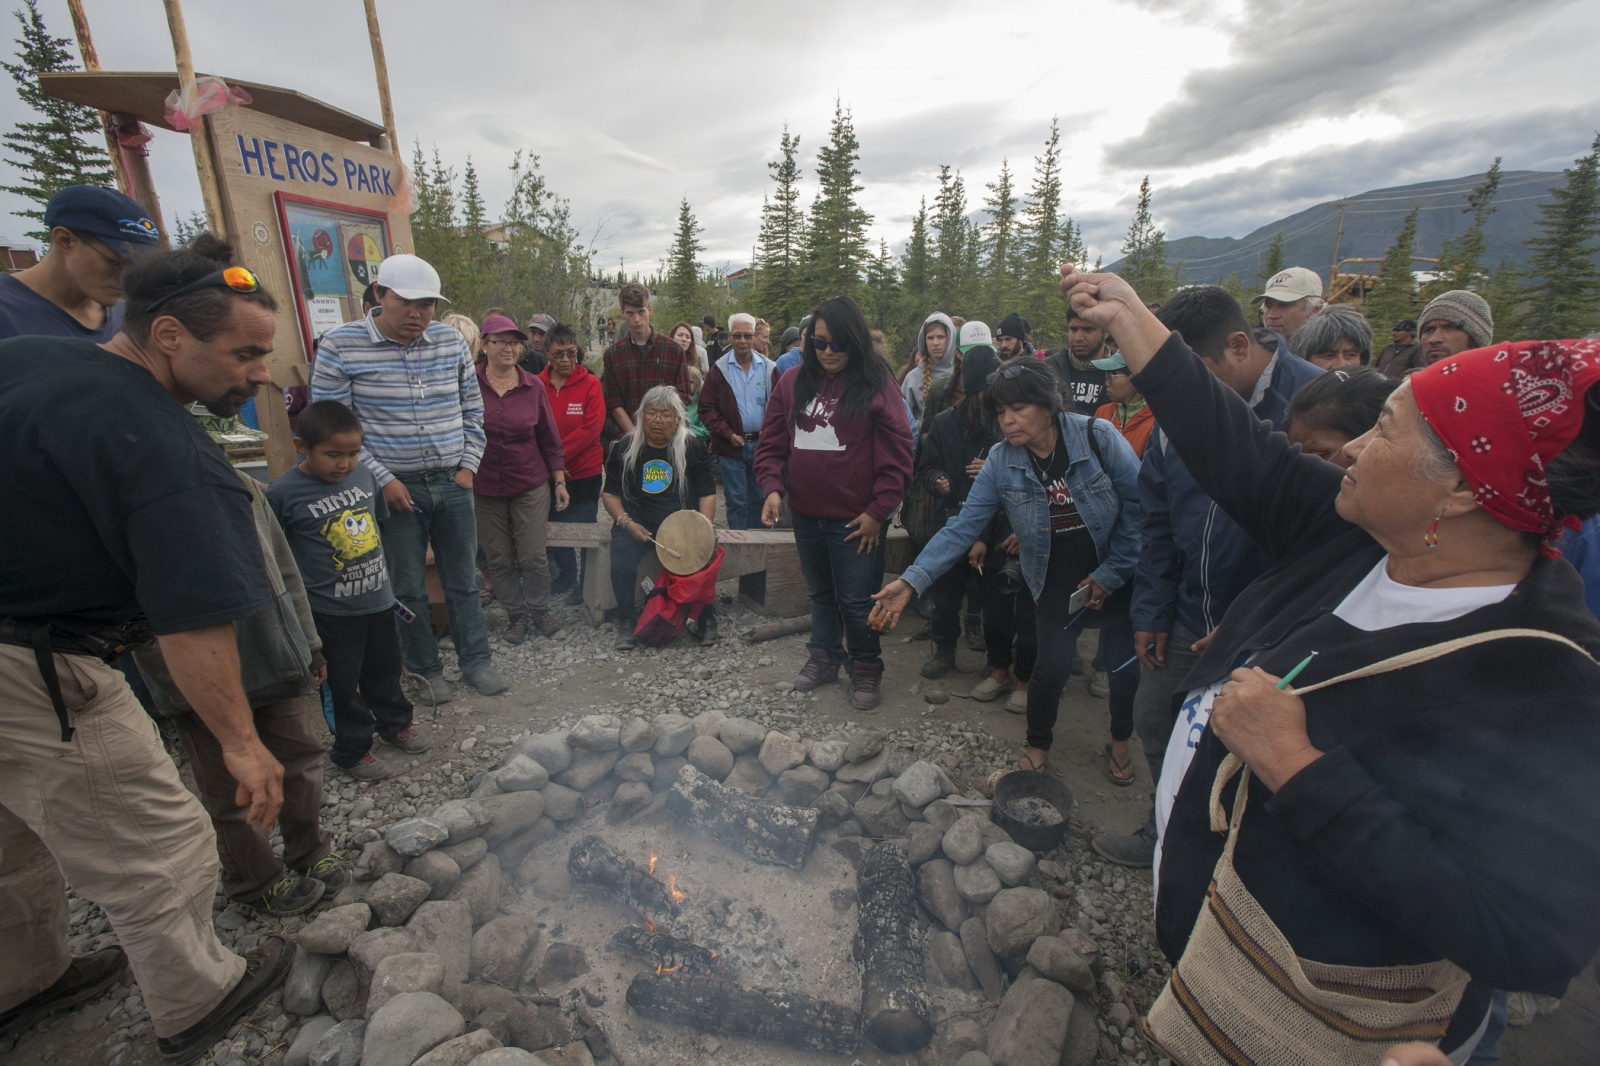 Art and Documentary Photography - Loading 6_Ario_Daniel_Z_hoo_Joins_the_Tobacco_ceremony_at__22Heros_Park_22_in_Arctic_Village_Alaska_06R2503.jpg